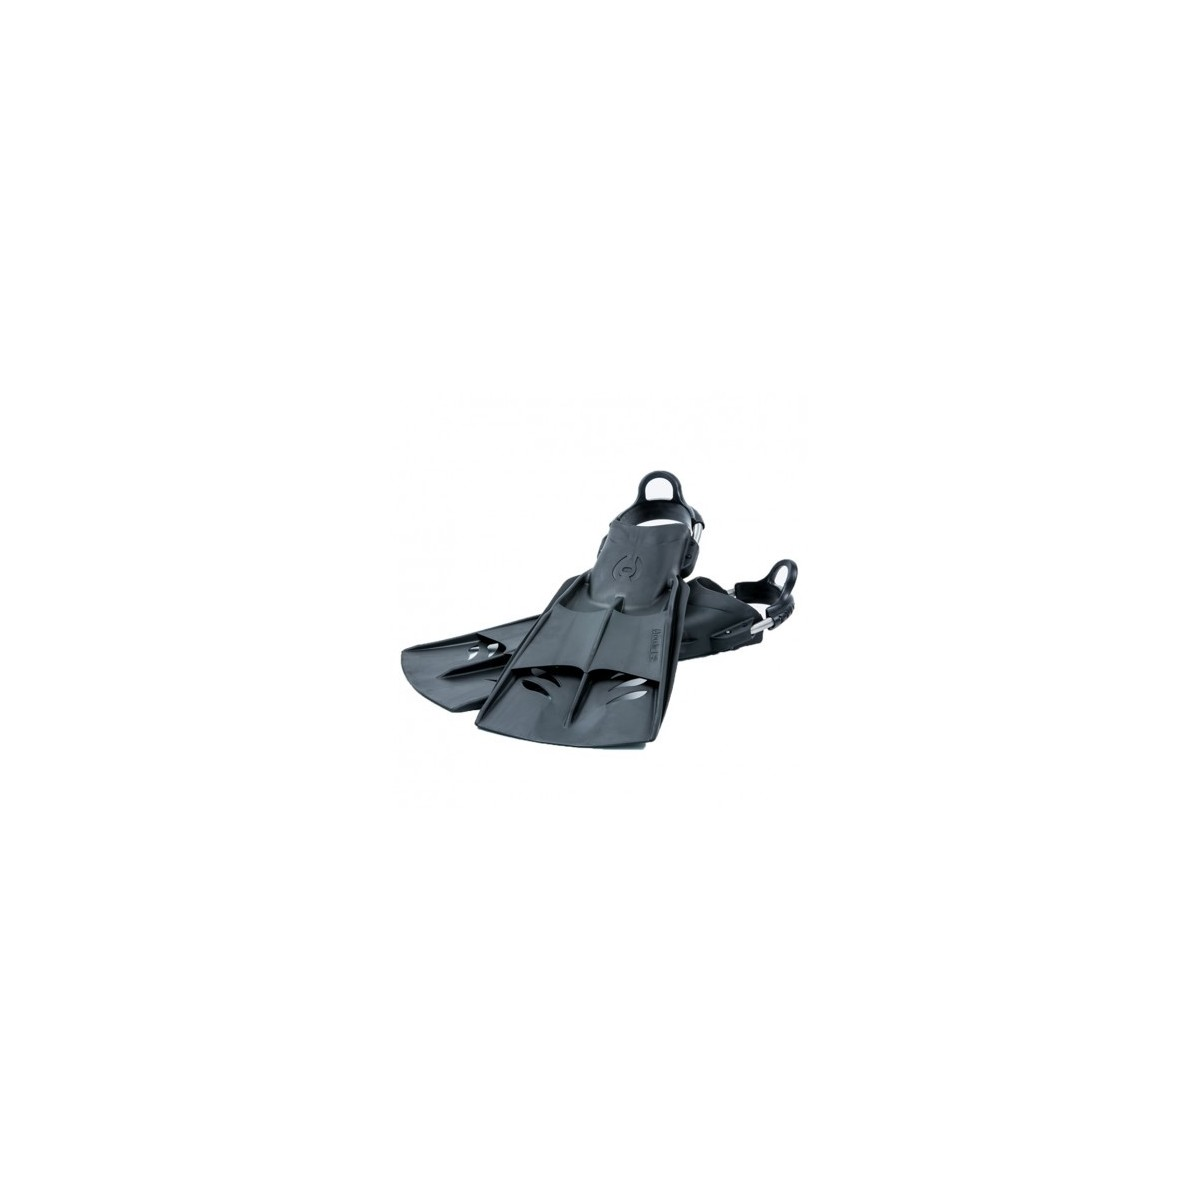 Hollis F2 Vented Blade Open Heel Lightweight Travel Diving Fin